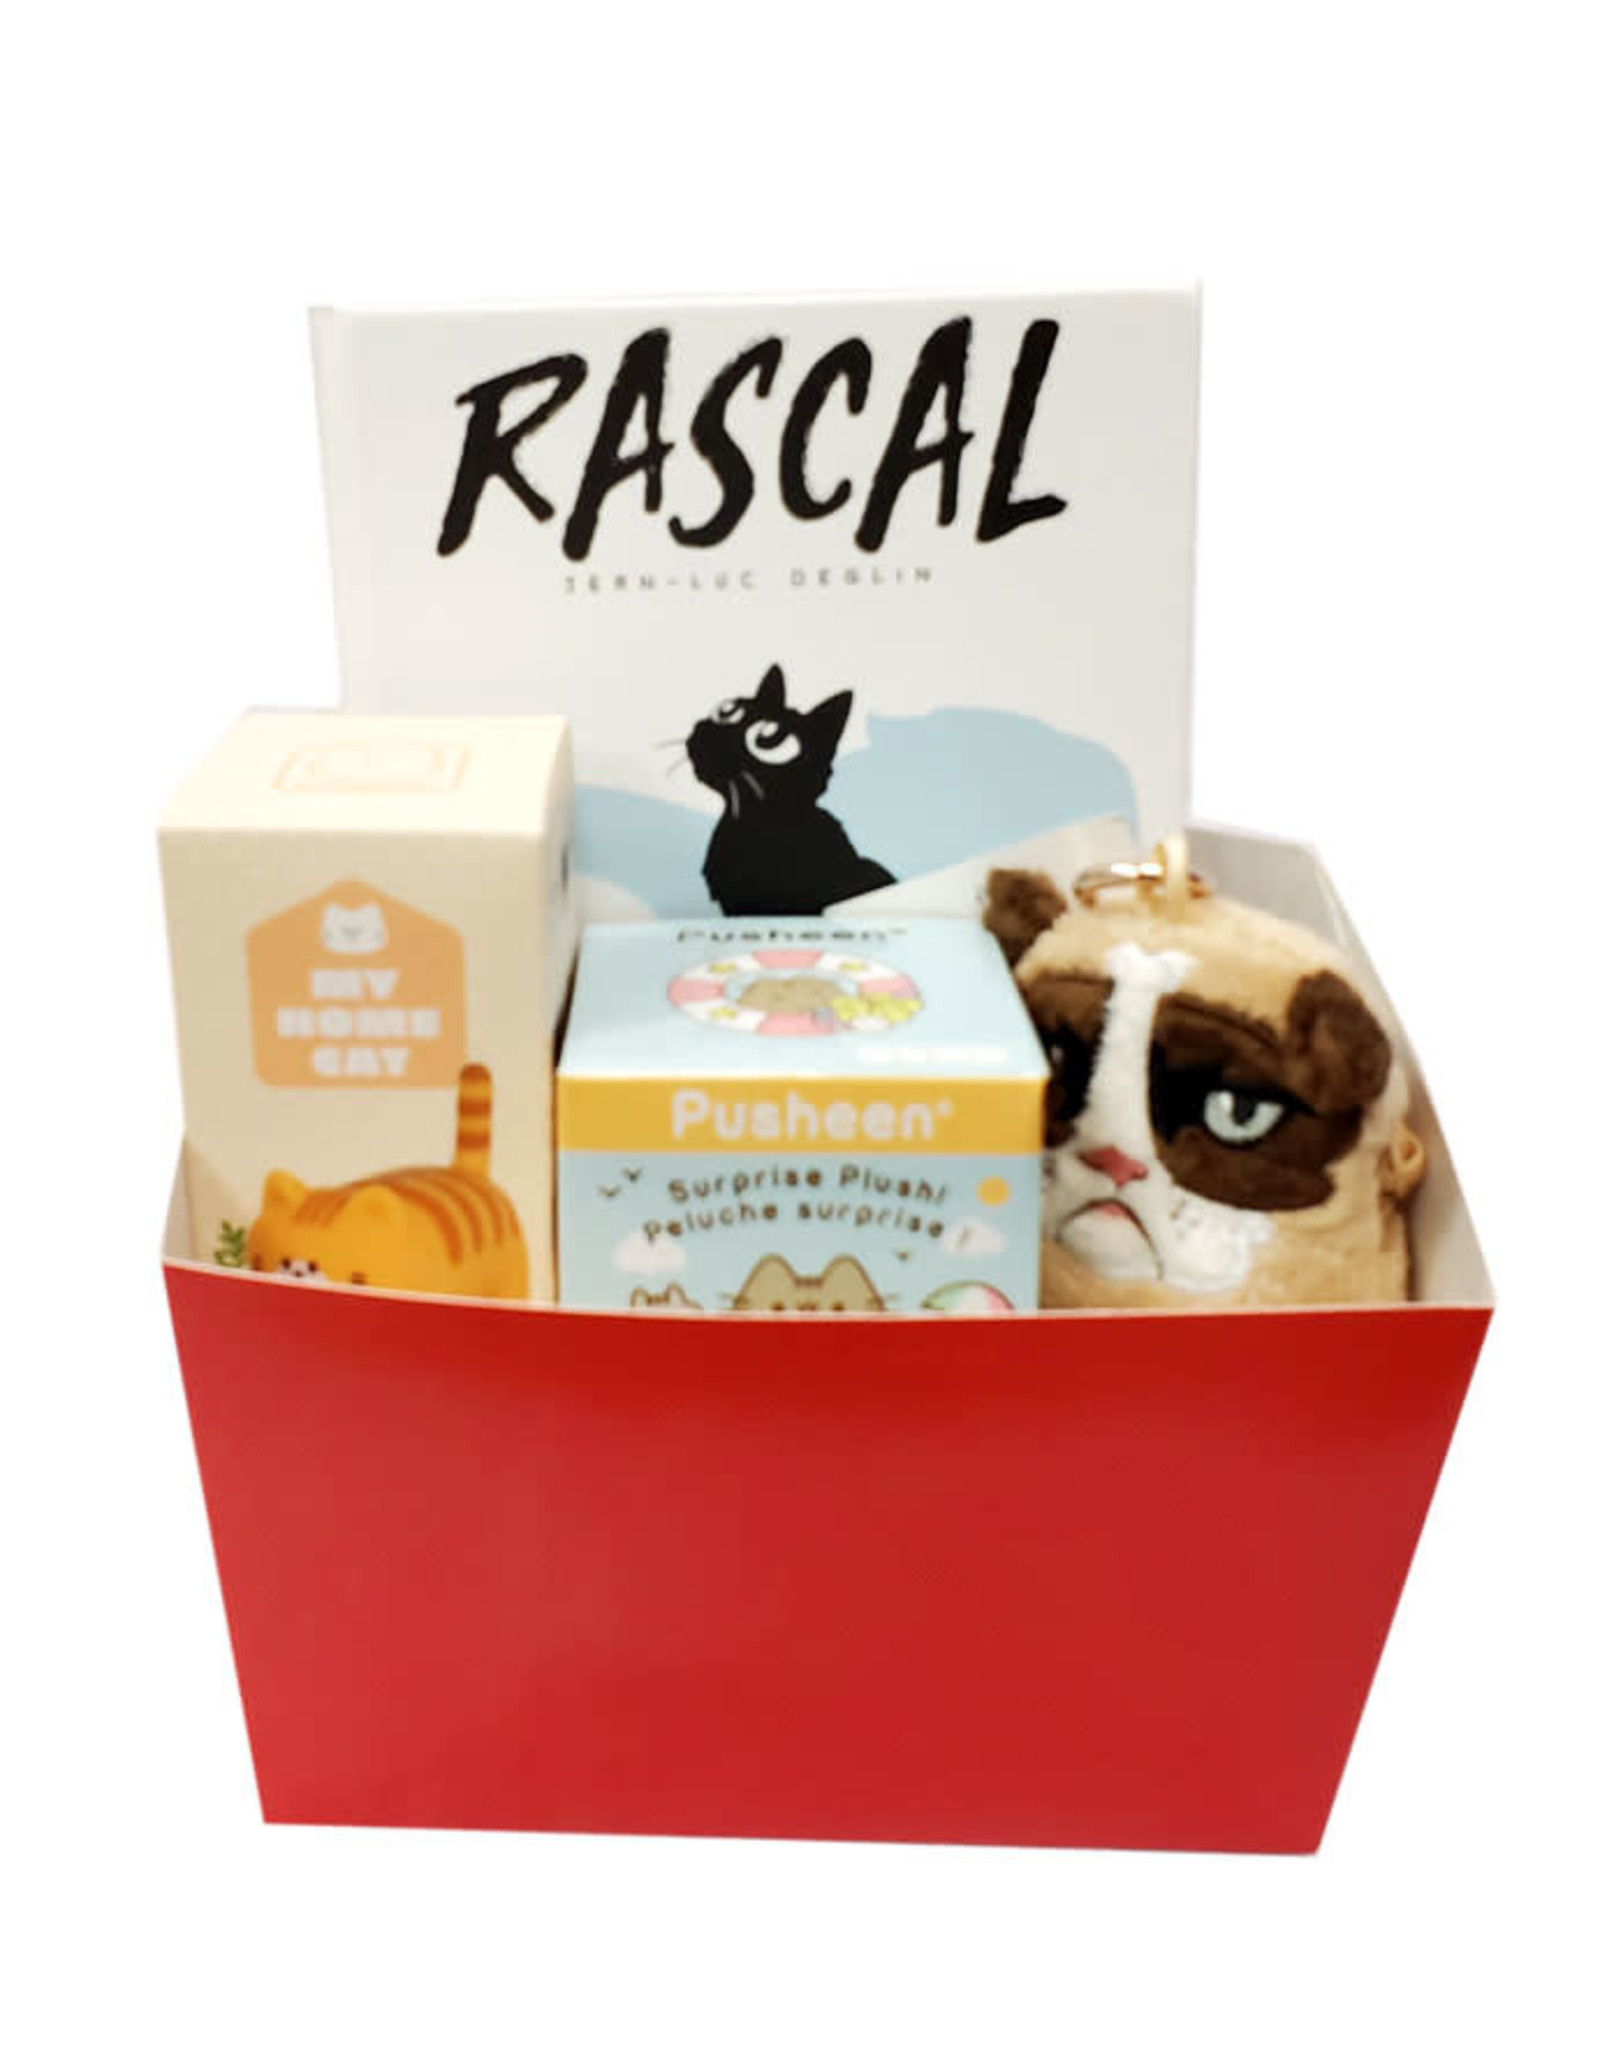 TINY CAT GIFT BASKET (FOR PEOPLE)